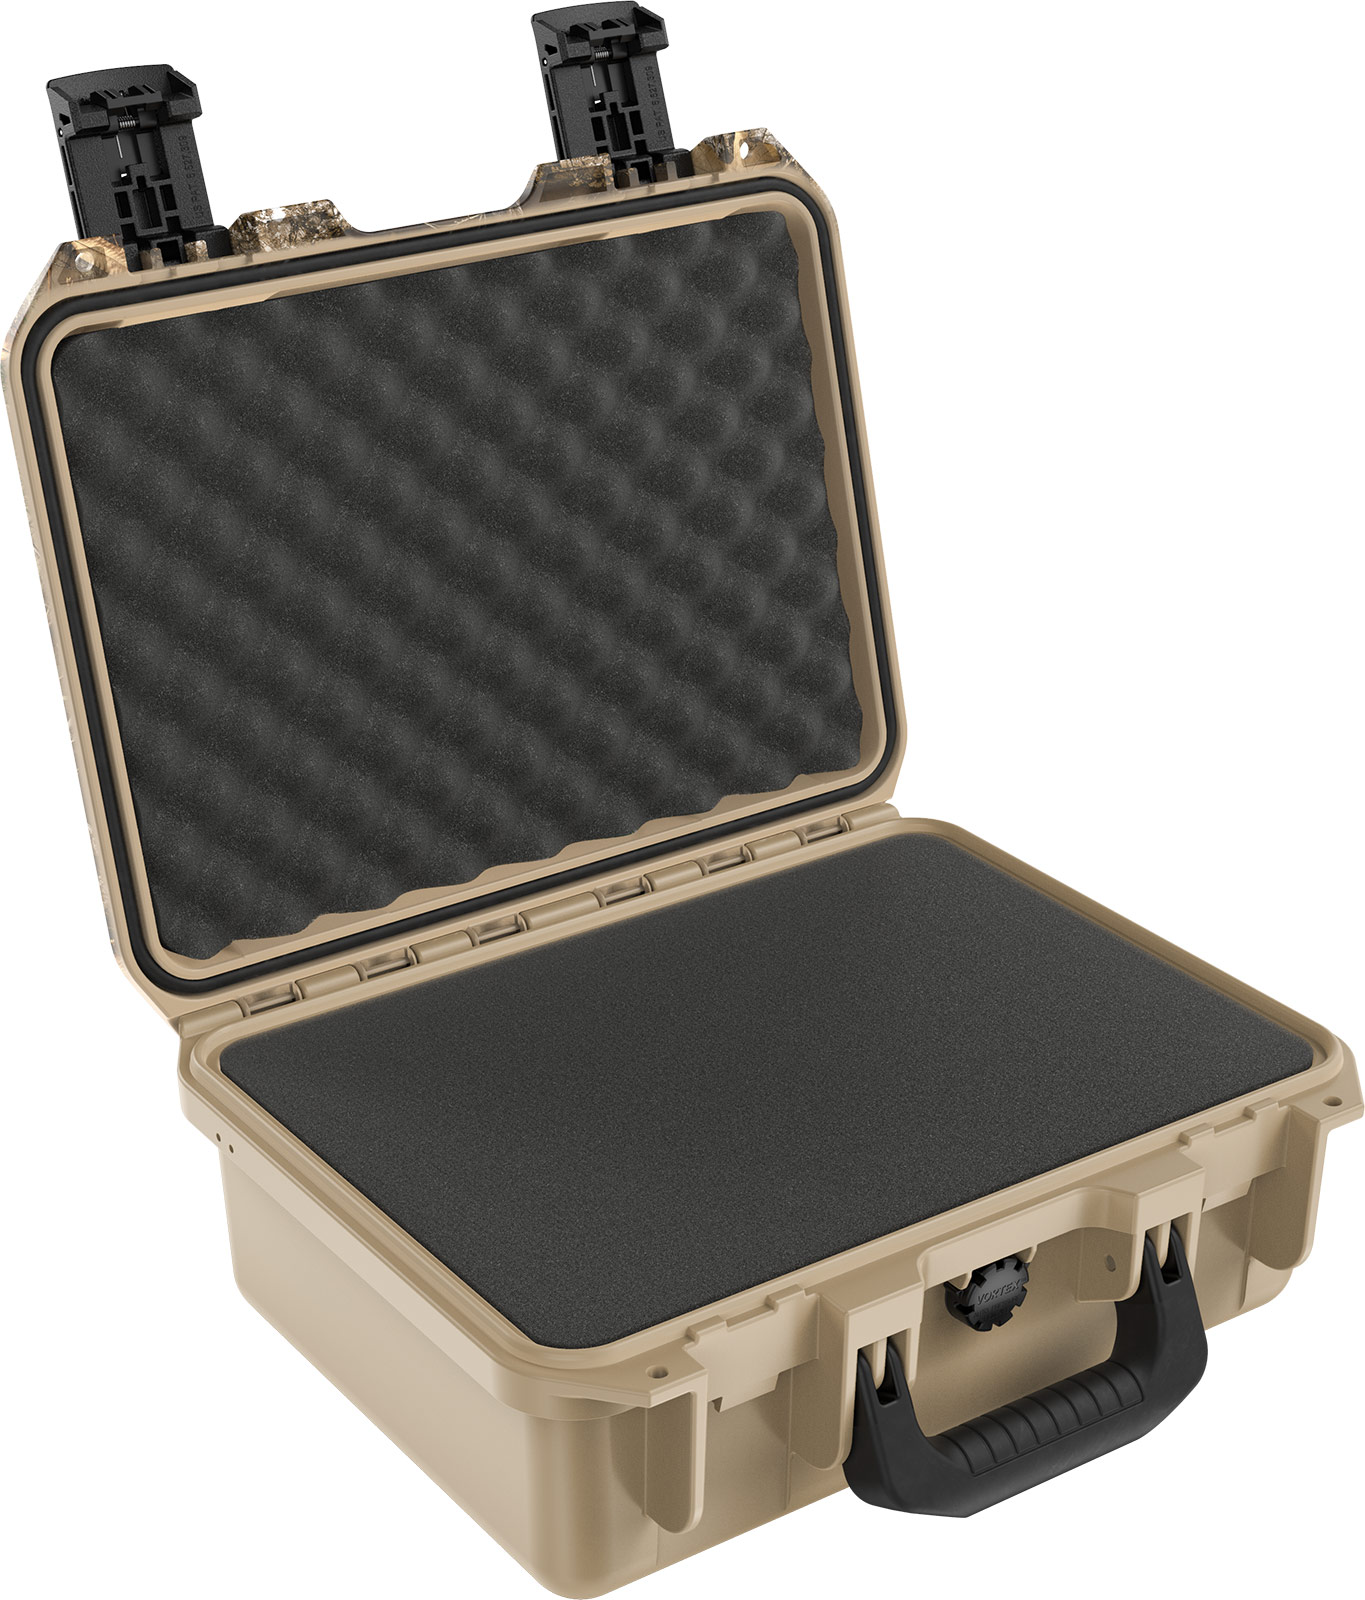 pelican im2100 realtree hunting case